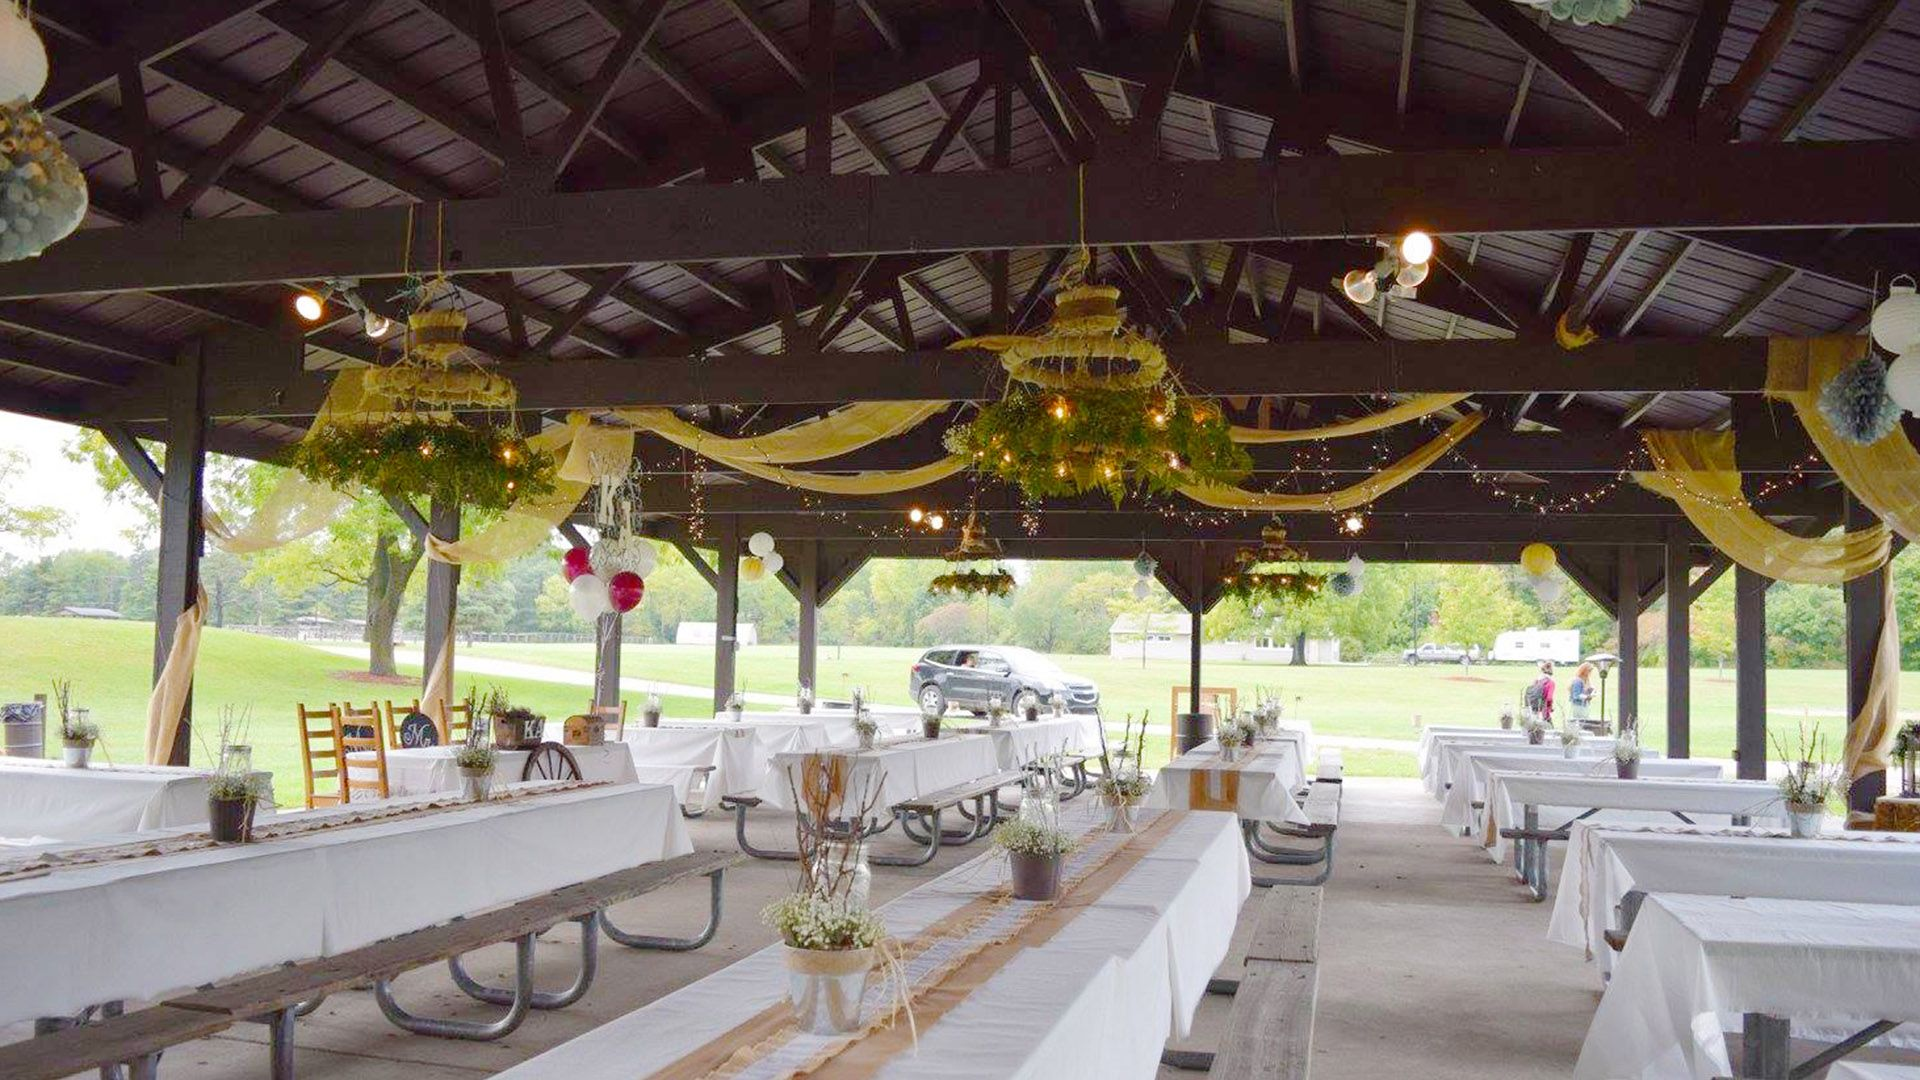 Weddings In 2020 Barbecue Wedding Pavilion Wedding Park Weddings